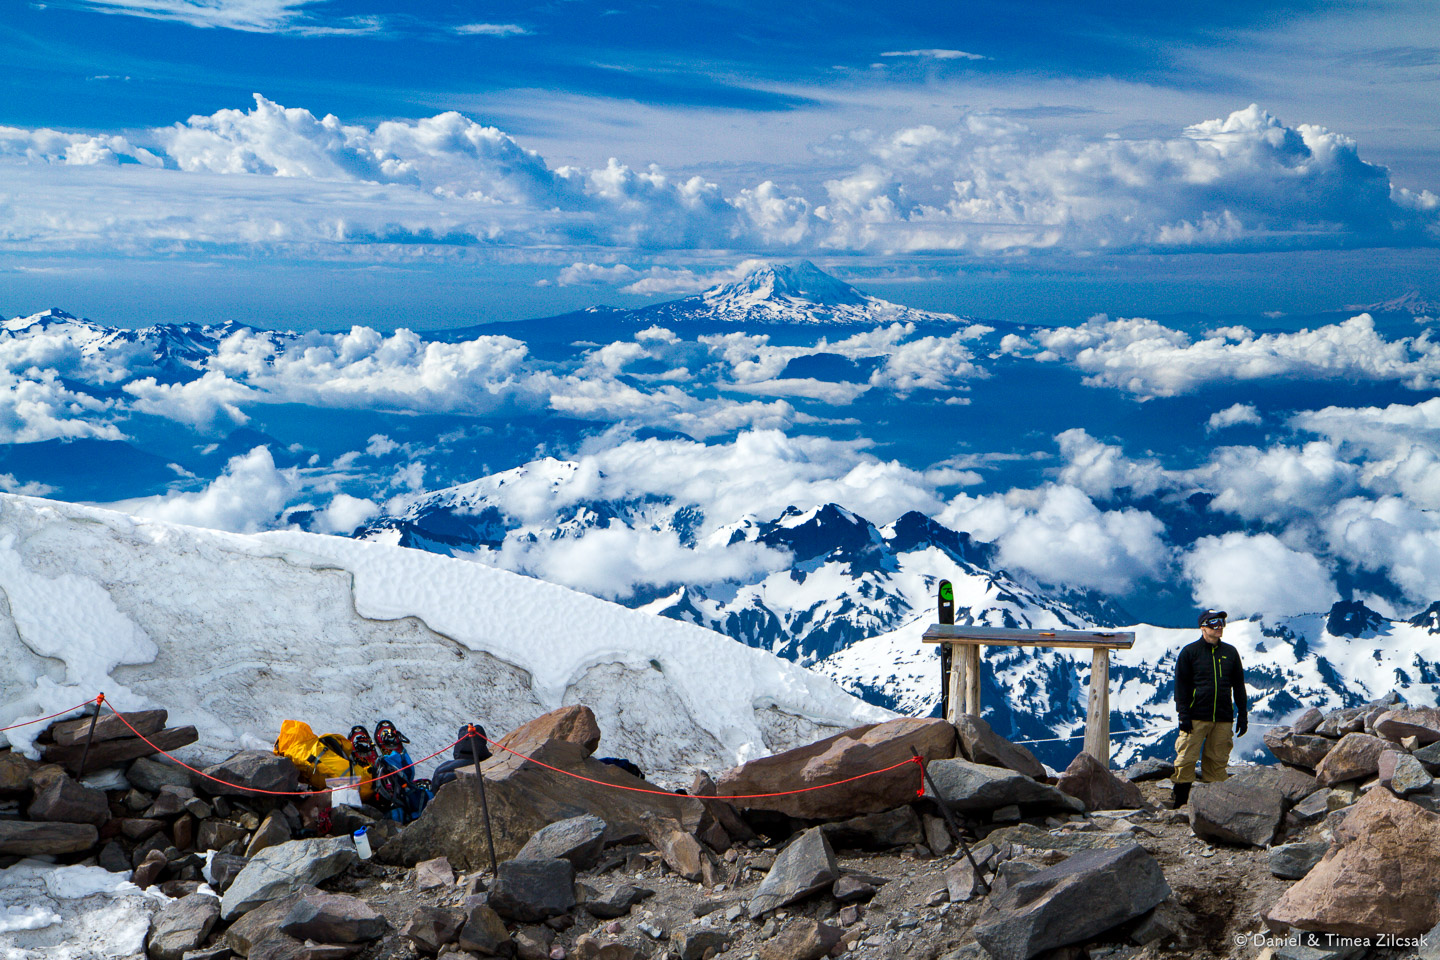 View from Camp Muir, the Rainier base camp above the clouds - more precisely 10080 ft high.